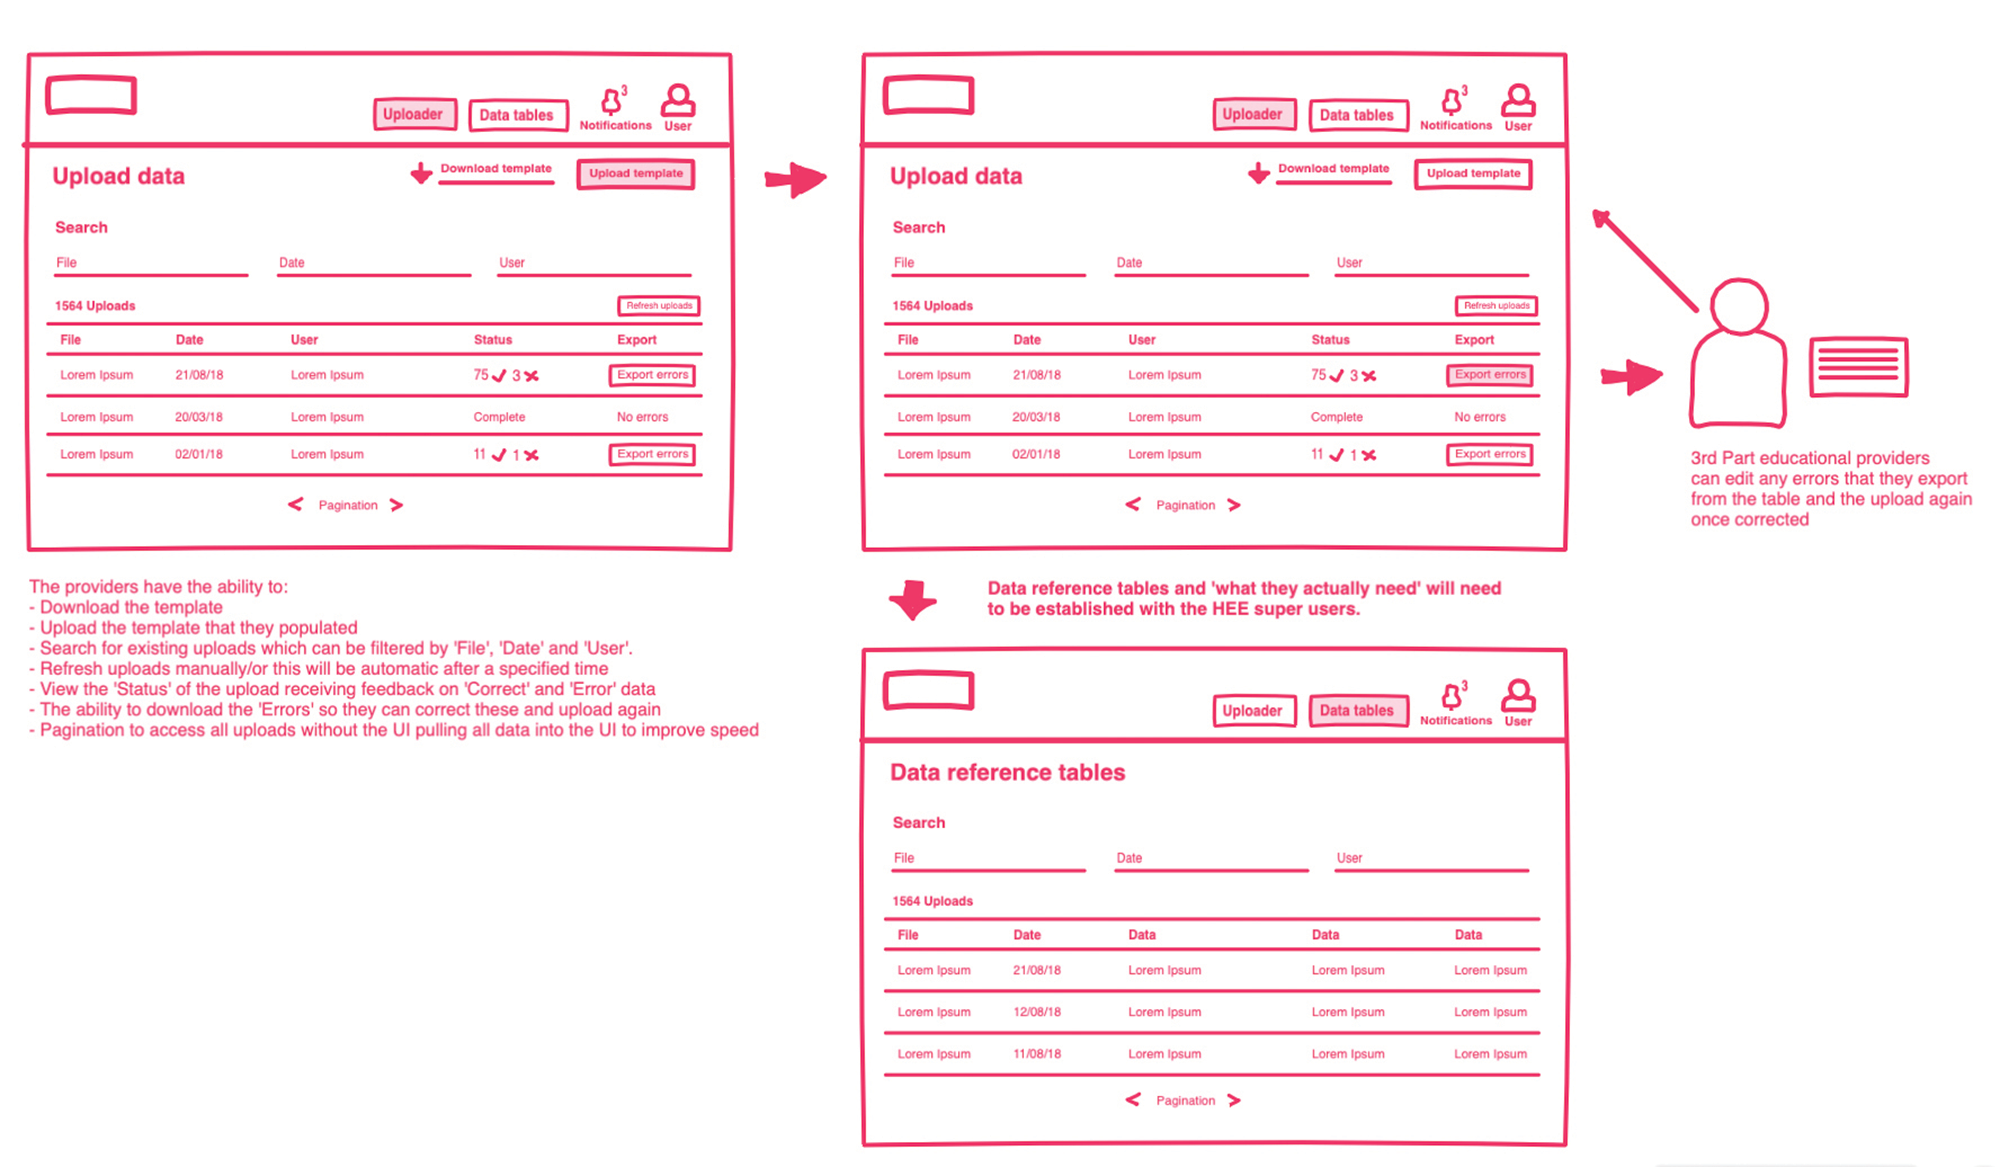 Wireframes and user journeys